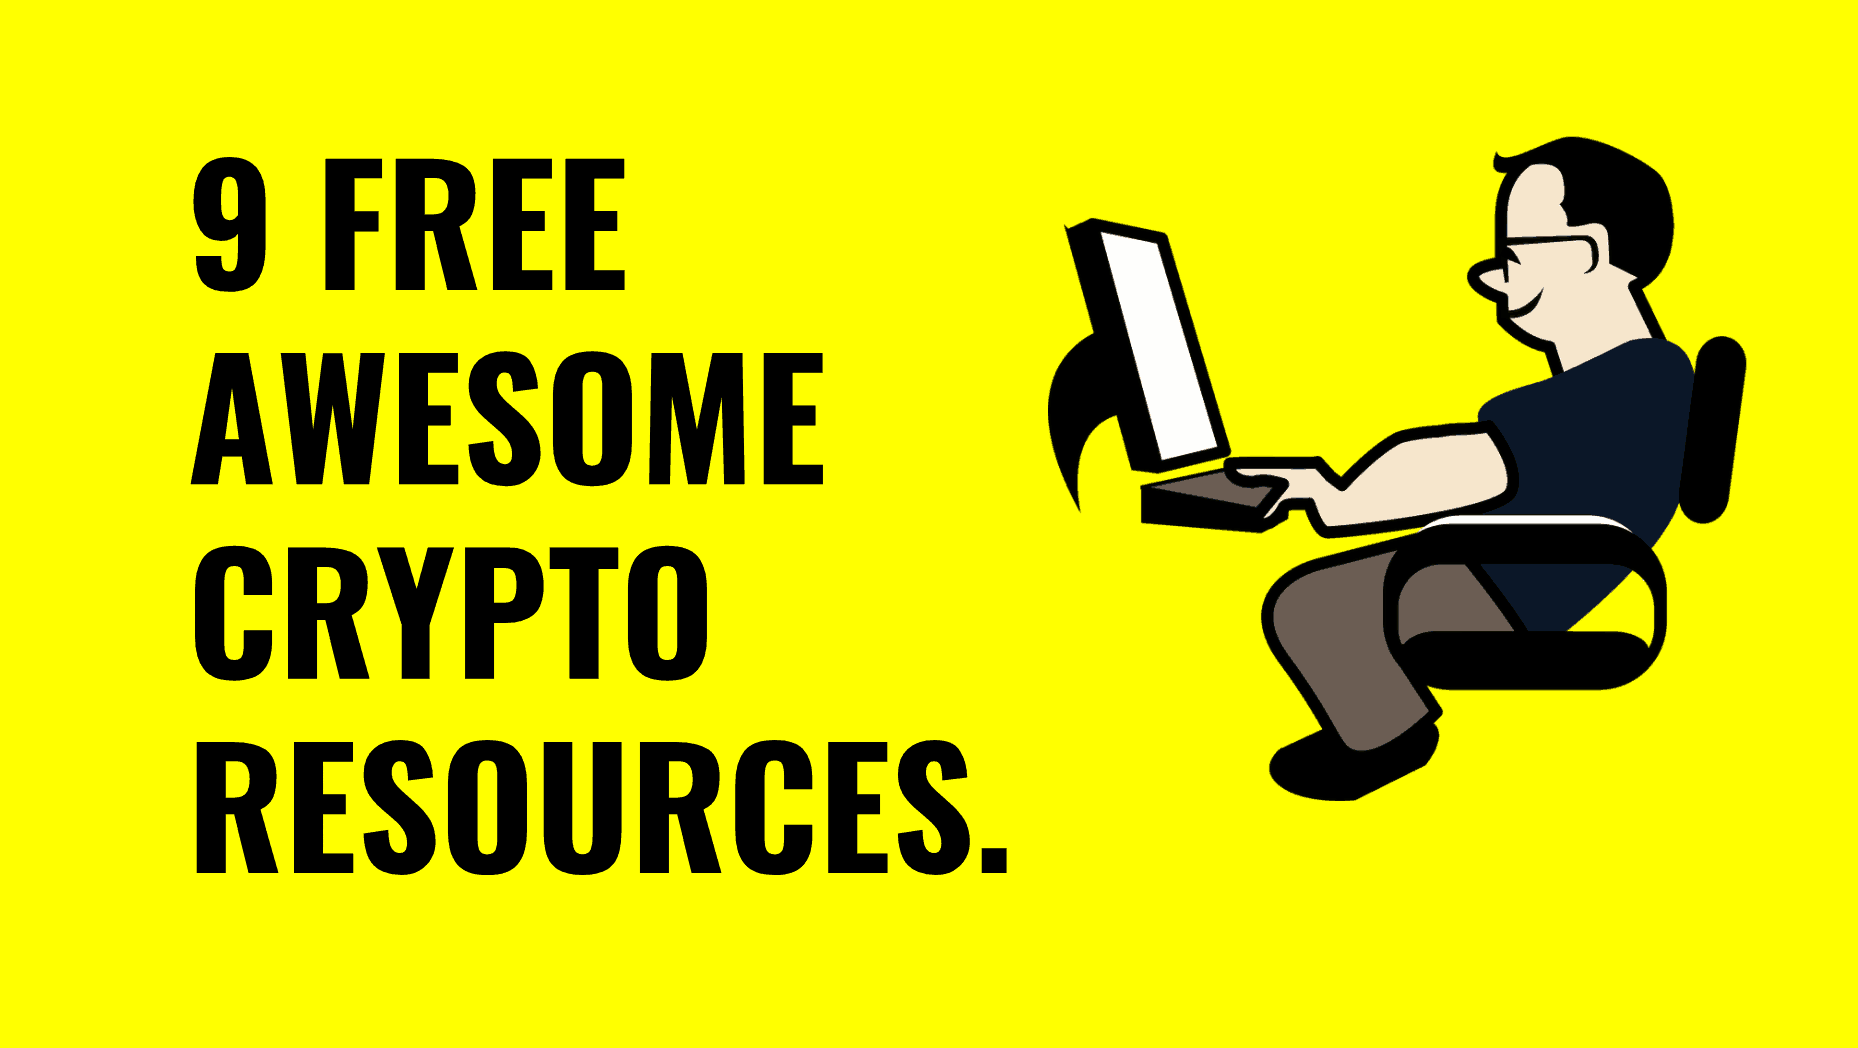 Free cryptocurrency resources for investing